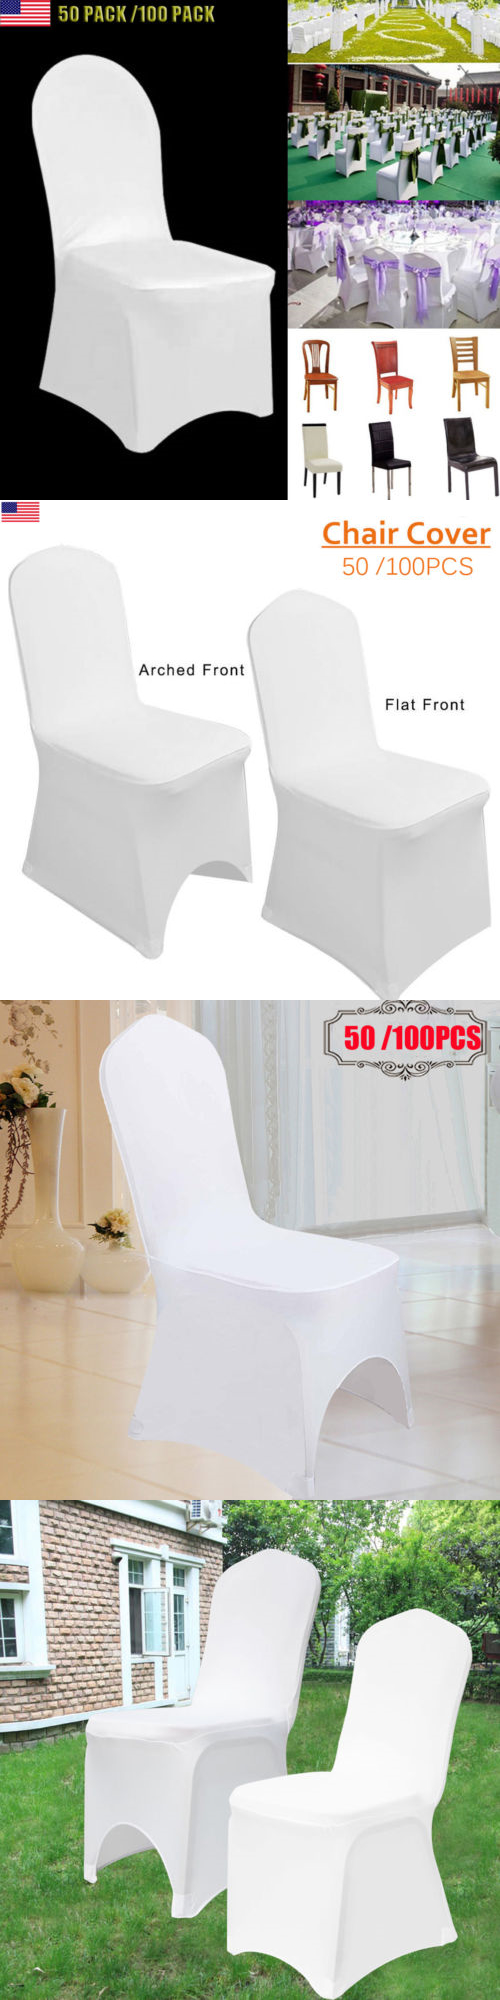 other wedding supplies 3268 50 100 universal wedding chair covers